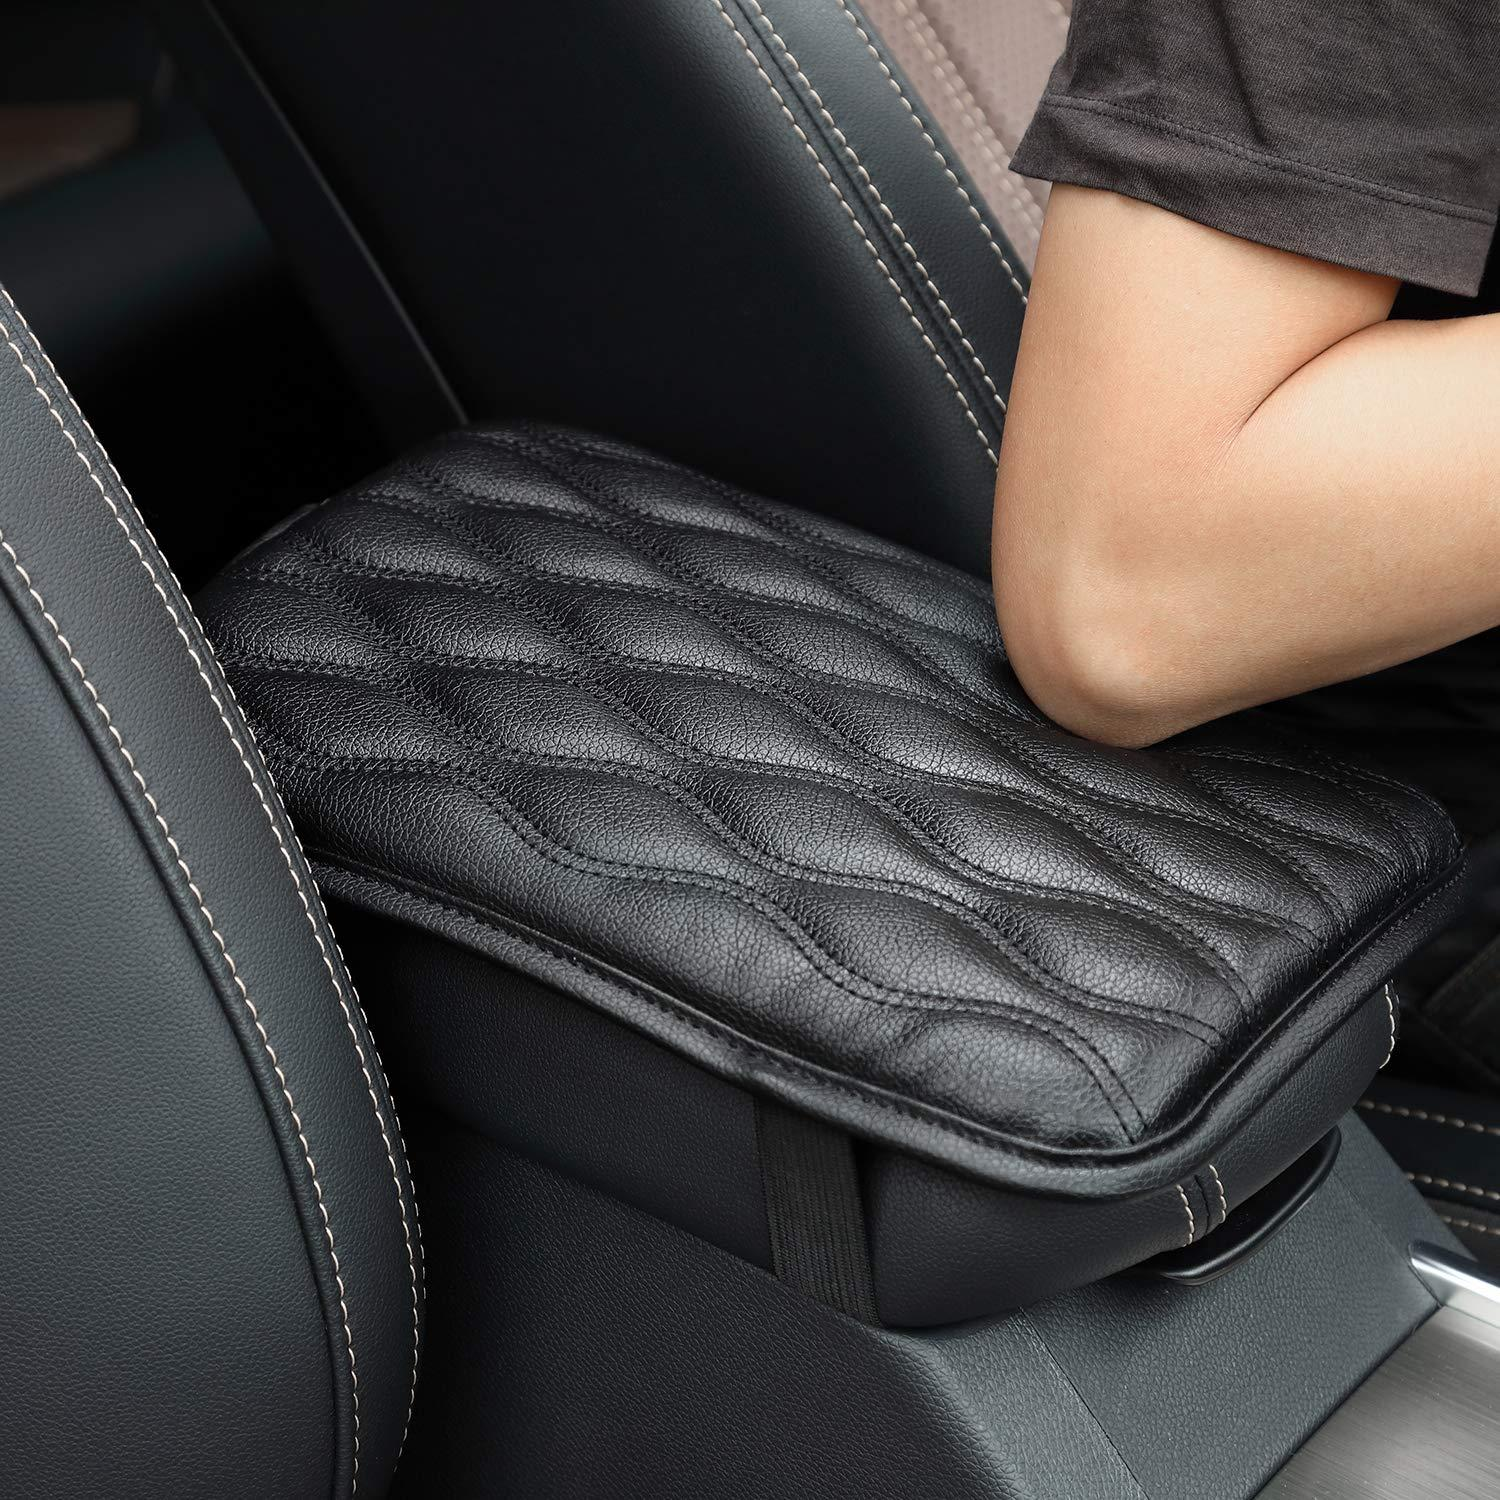 Universal Center Console Cover for Most Vehicle, SUV, Truck, Car, Waterproof Armrest Cover Center Console Pad Protector